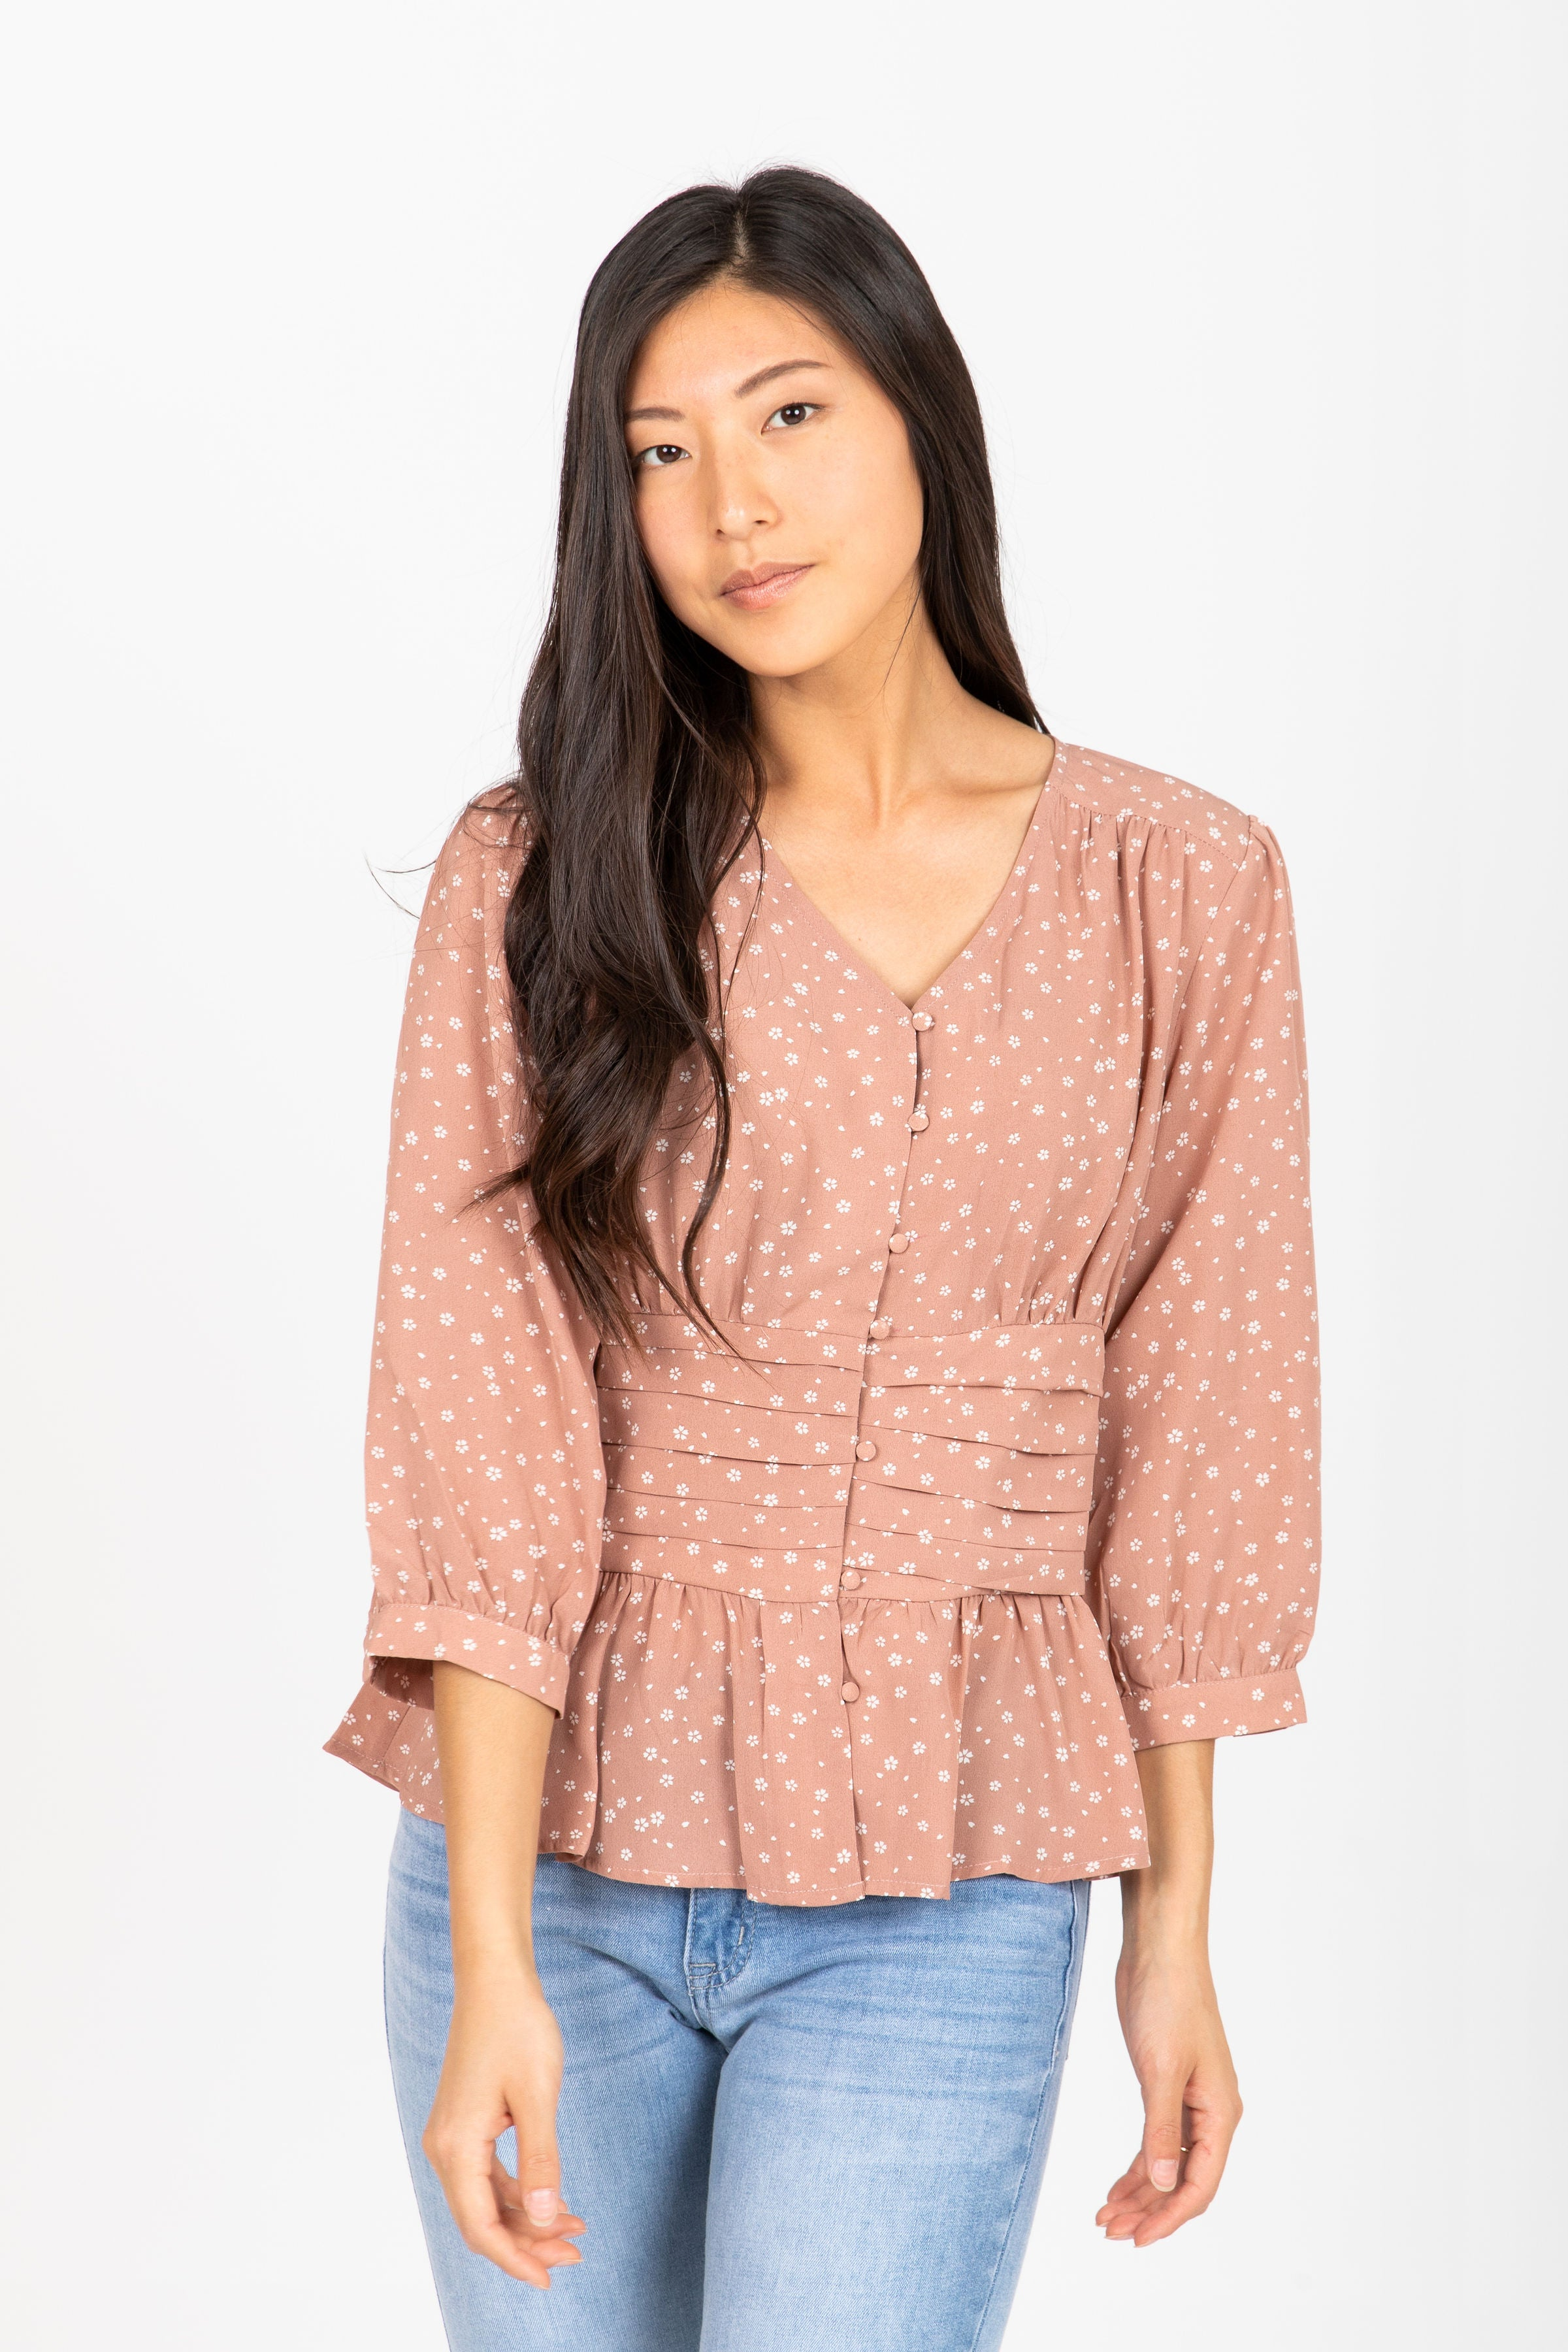 The Muse Floral Button Blouse in Mauve